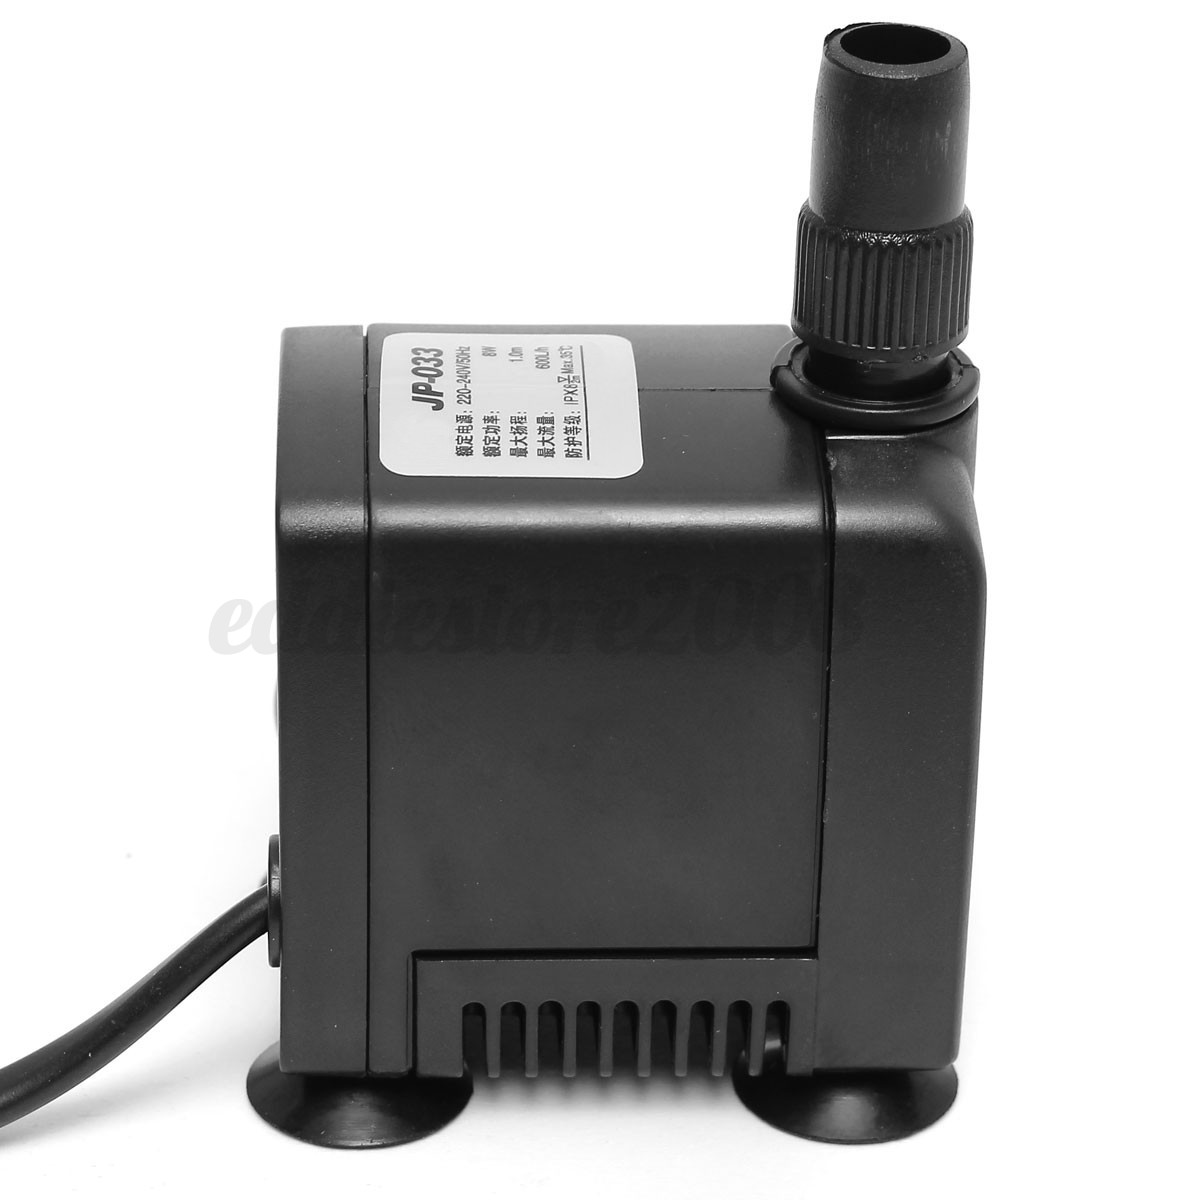 Aquarium fish tank wavemaker - 80 6400 Gph Marine Wave Maker Aquarium Fish